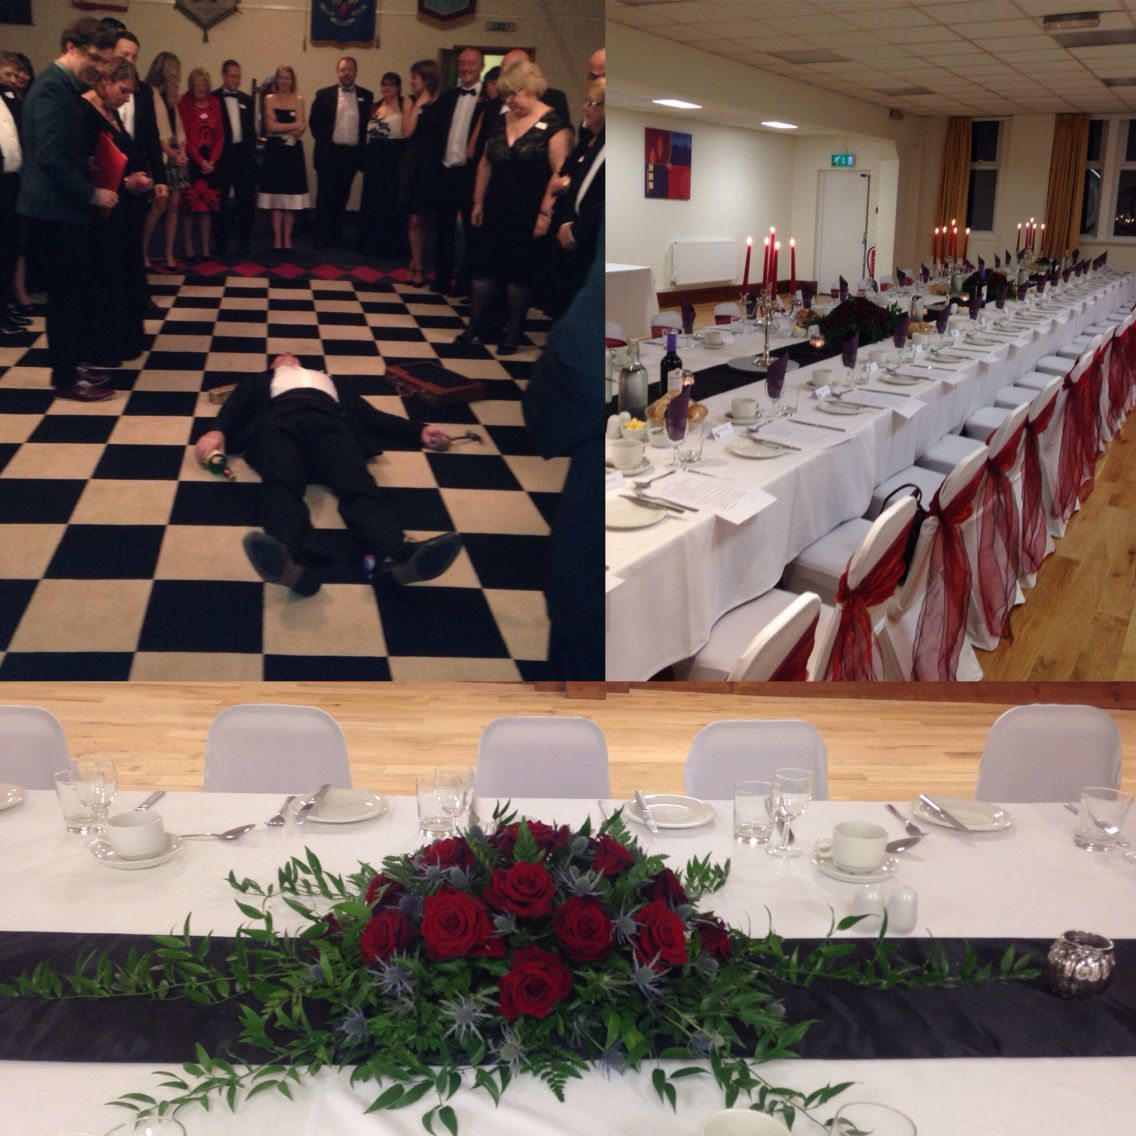 Murder mystery night at redditch Masonic hall Banquet table with